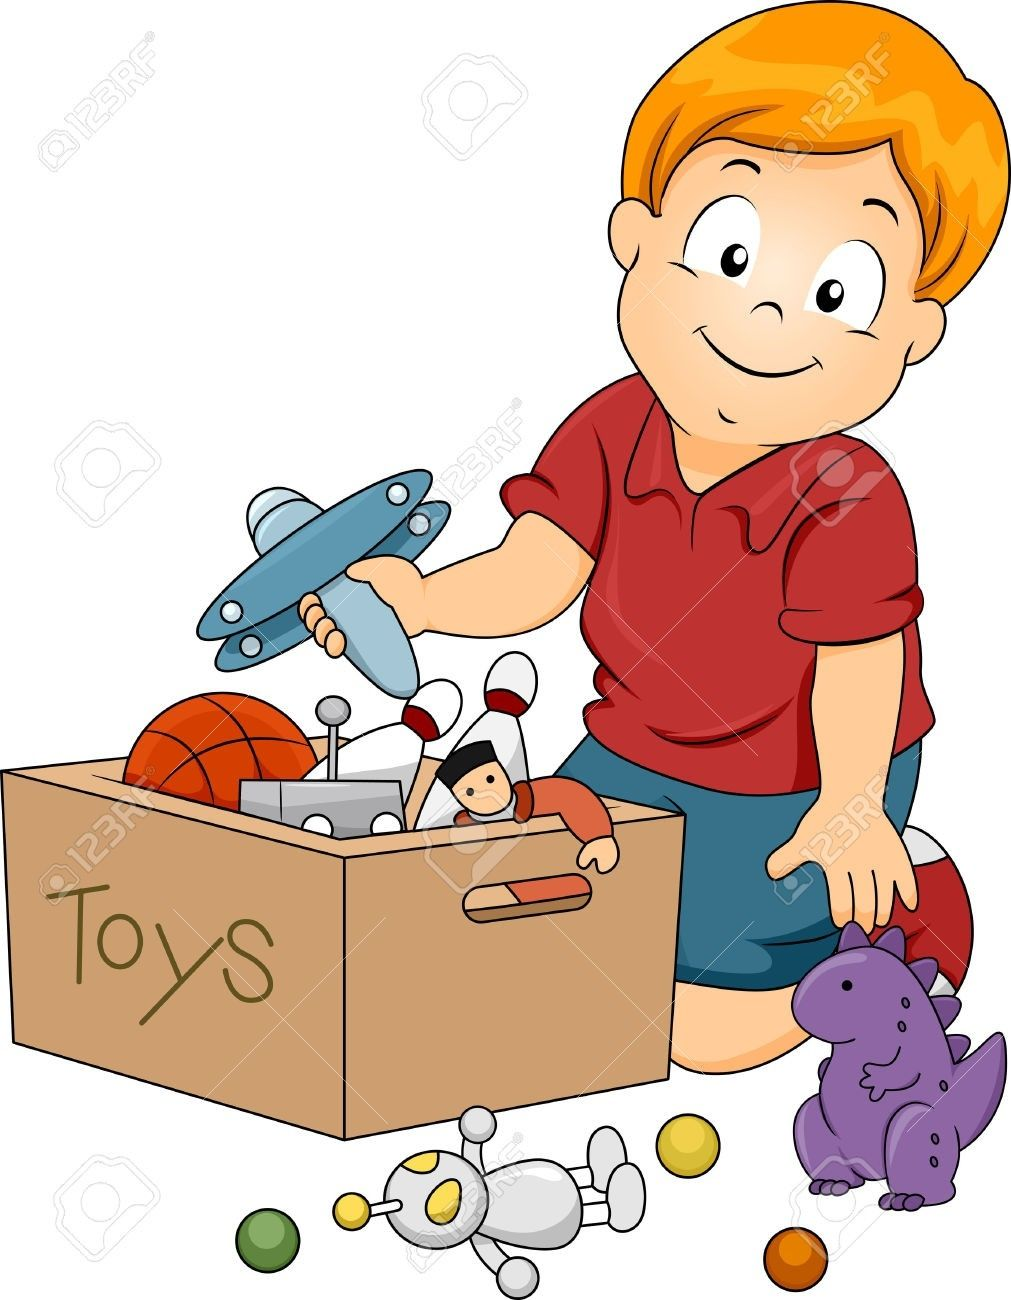 Kids Cleaning Up Toys Clipart.